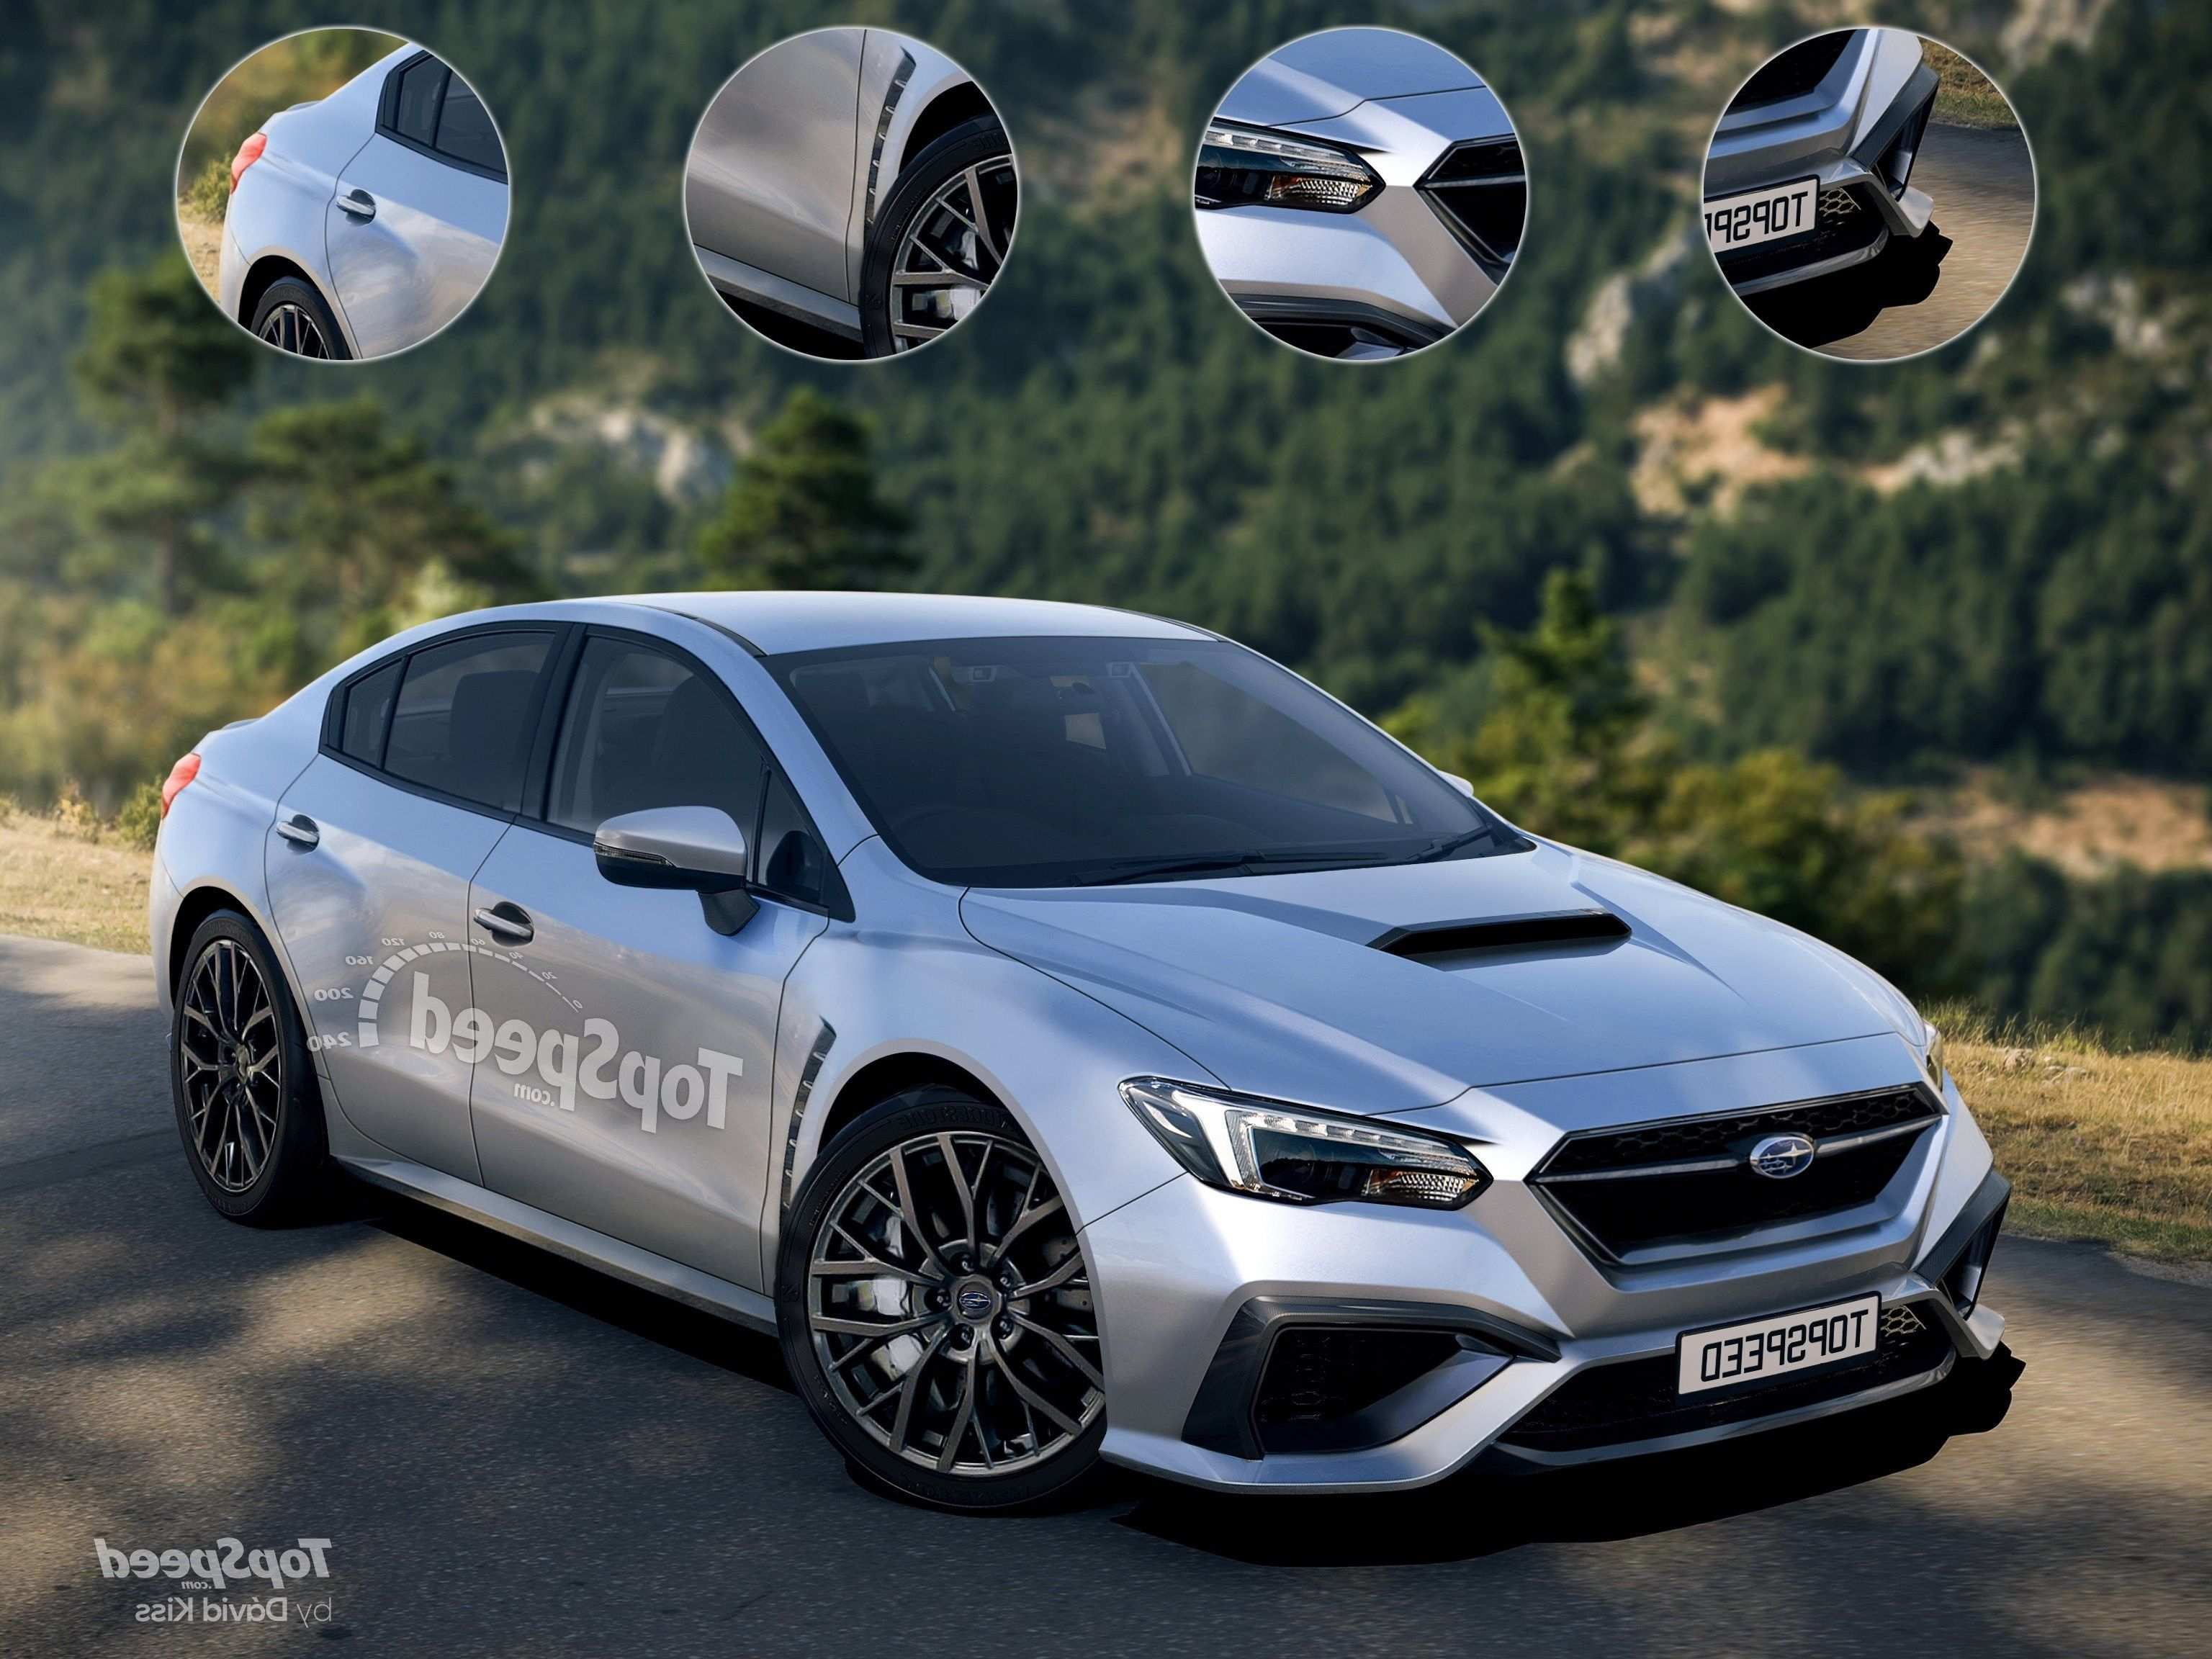 13 Gallery of 2020 Subaru Wrx Exterior Date Overview by 2020 Subaru Wrx Exterior Date